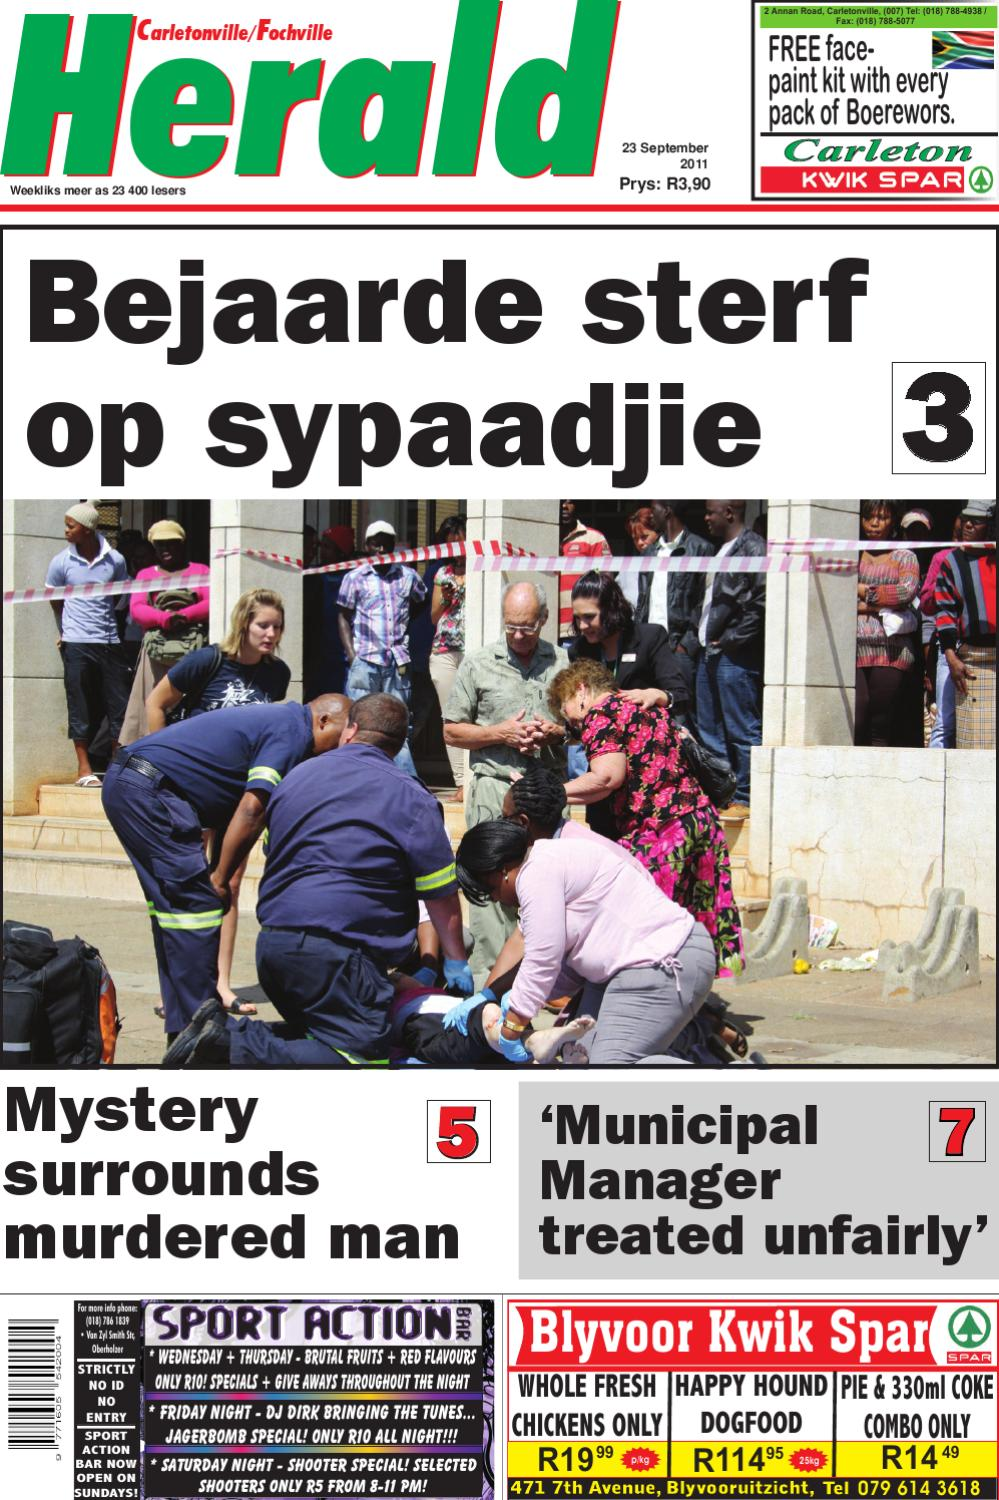 Carletonville Herald 14 September 2012 by Carletonvilleherald - issuu